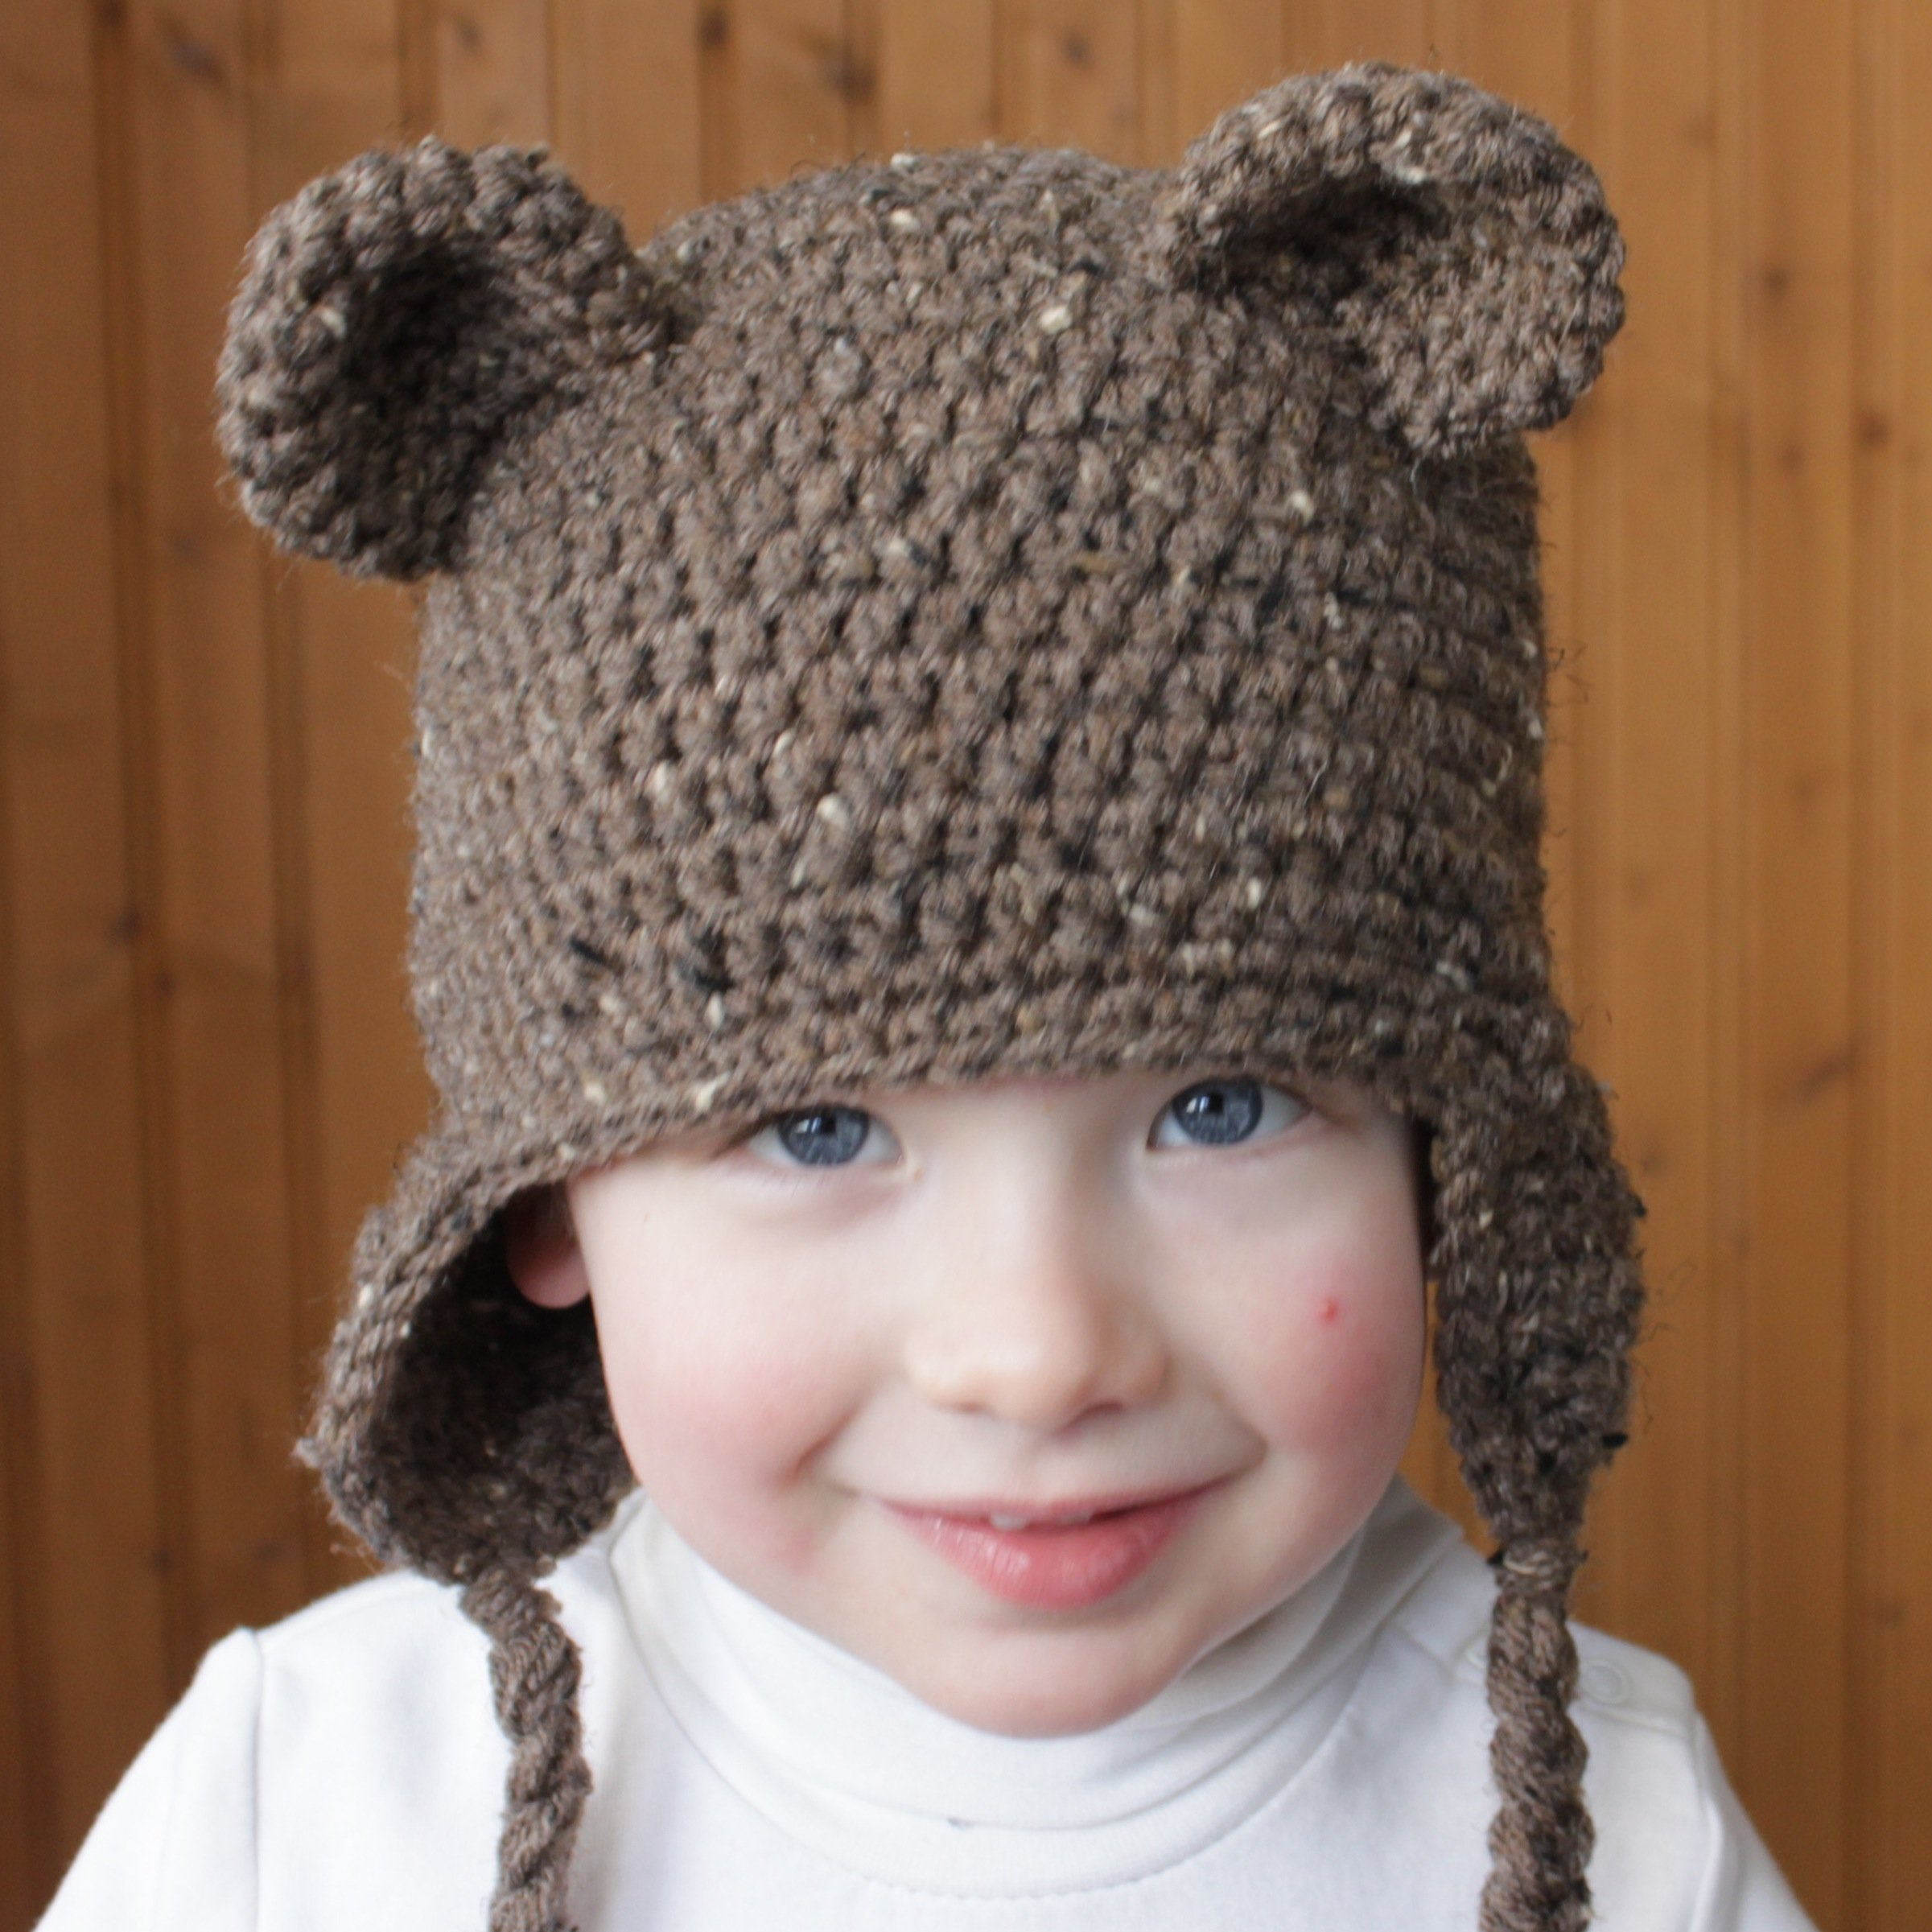 Crochet Baby Teddy Bear Hat Pattern : 34 Crochet Teddy Bear Patterns Guide Patterns